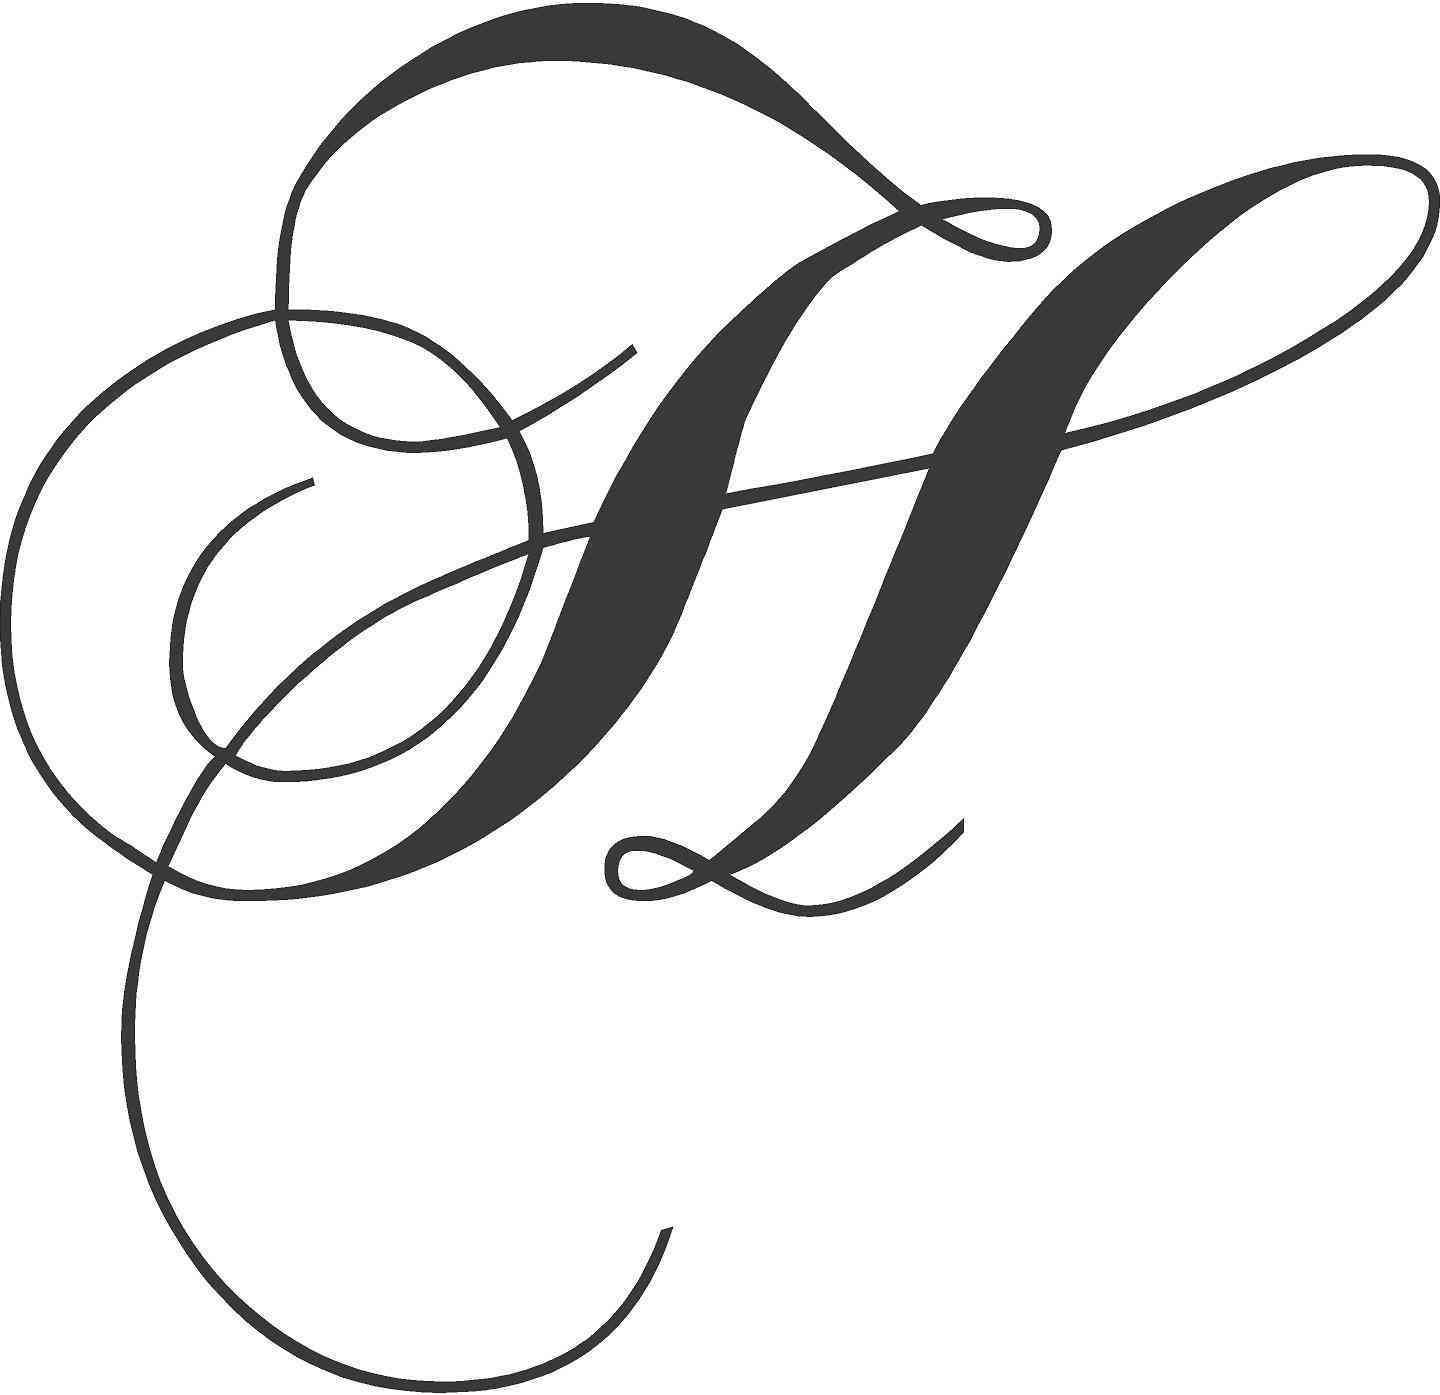 Fancy letter h designs best of elegant fancy cursive ...